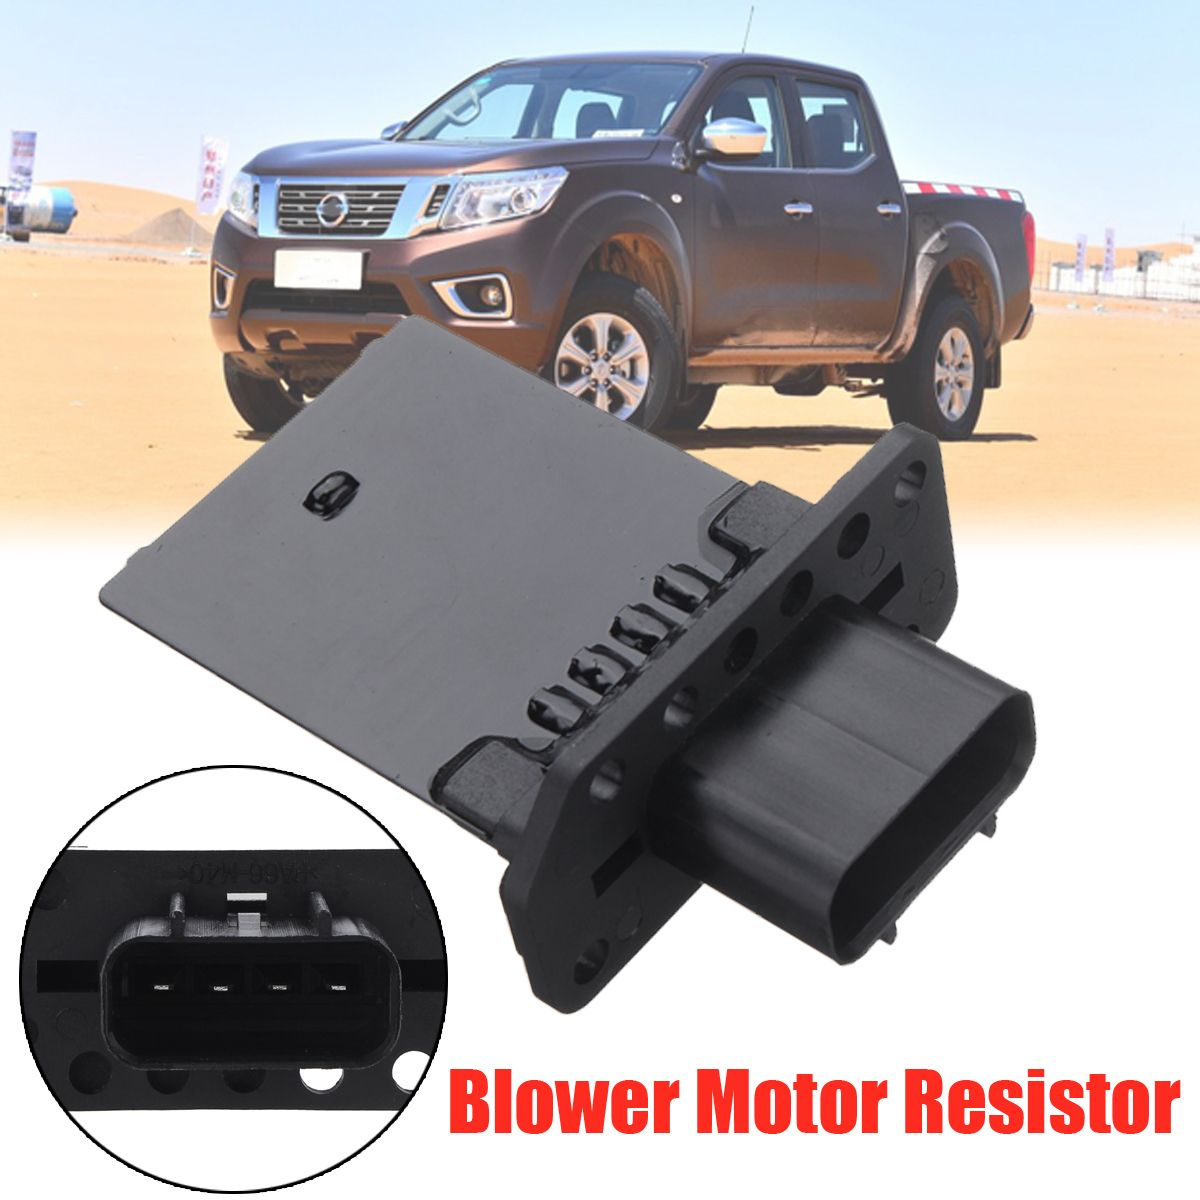 medium resolution of car blower motor heater fan resistor for nissan navara d40 pathfinder r51 05 13 sale shoppingdiscounts